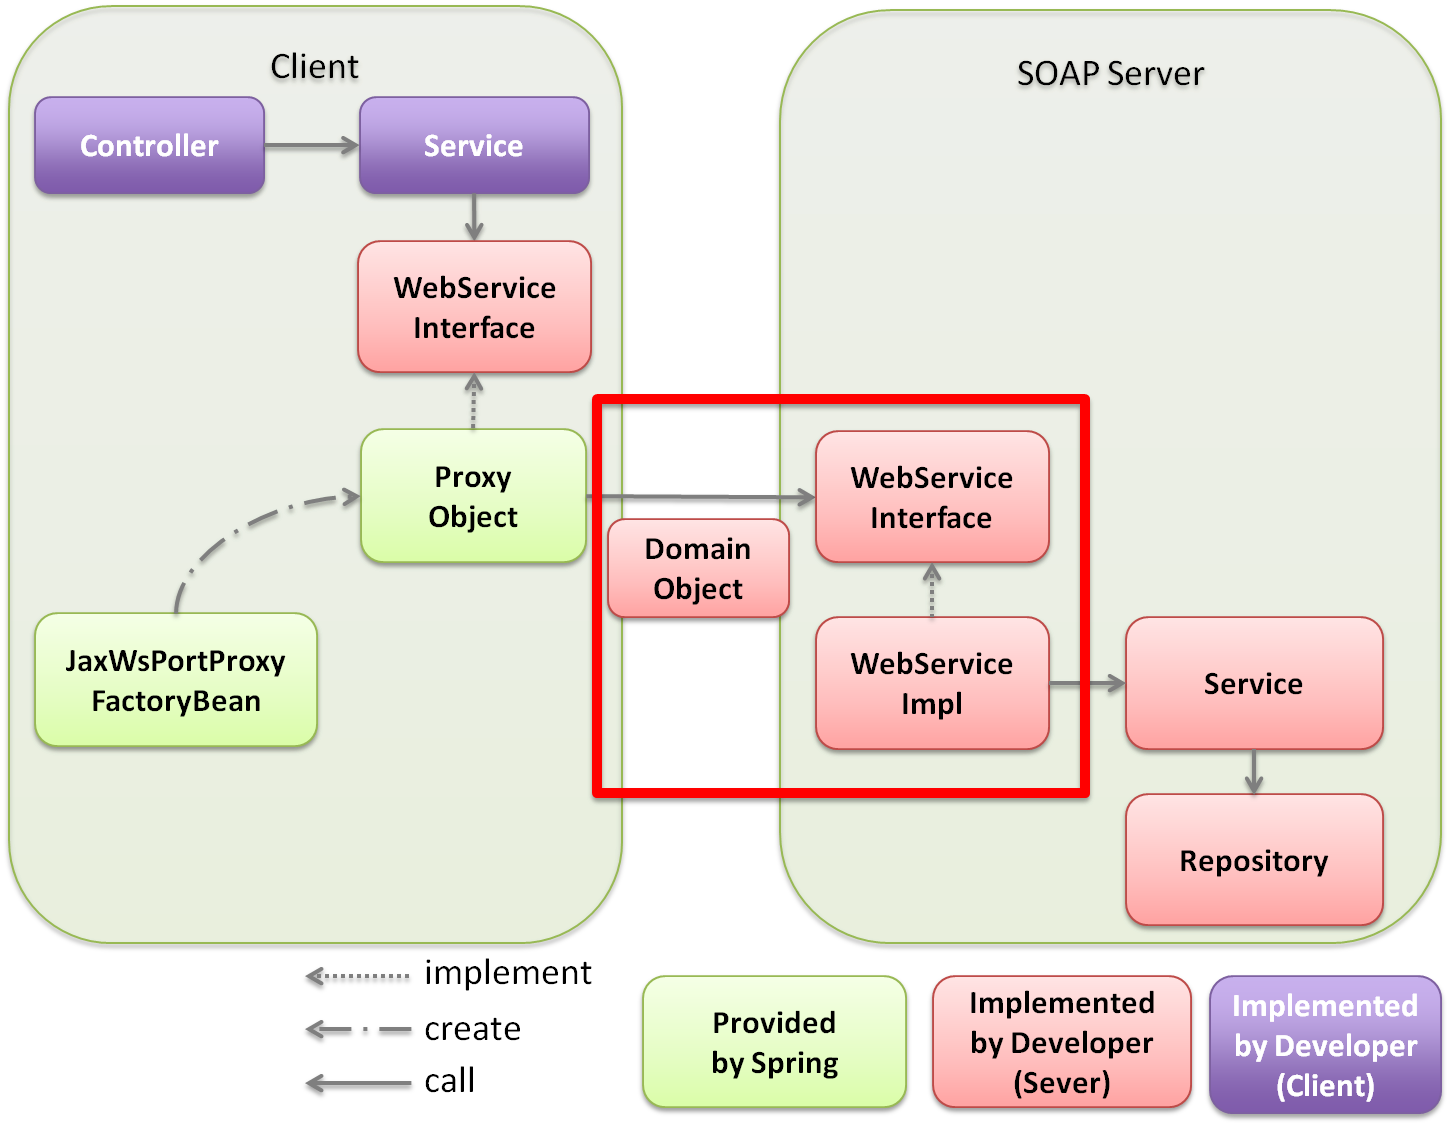 Application soap xml was not supported by service